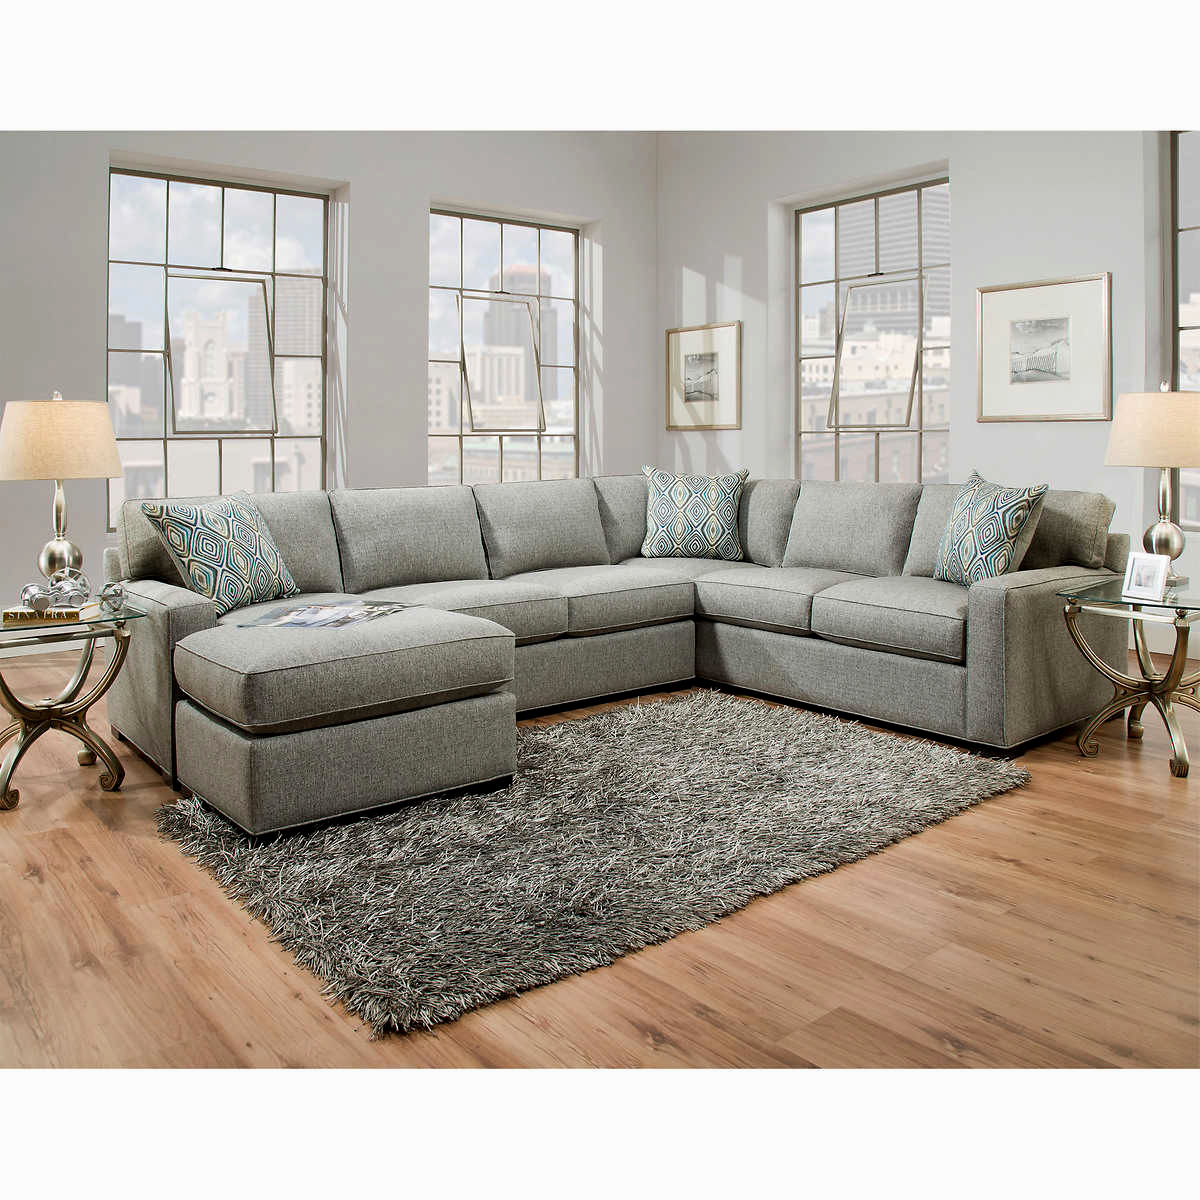 Costco Home Furnishings: Best Of Costco Furniture Sofas Wallpaper